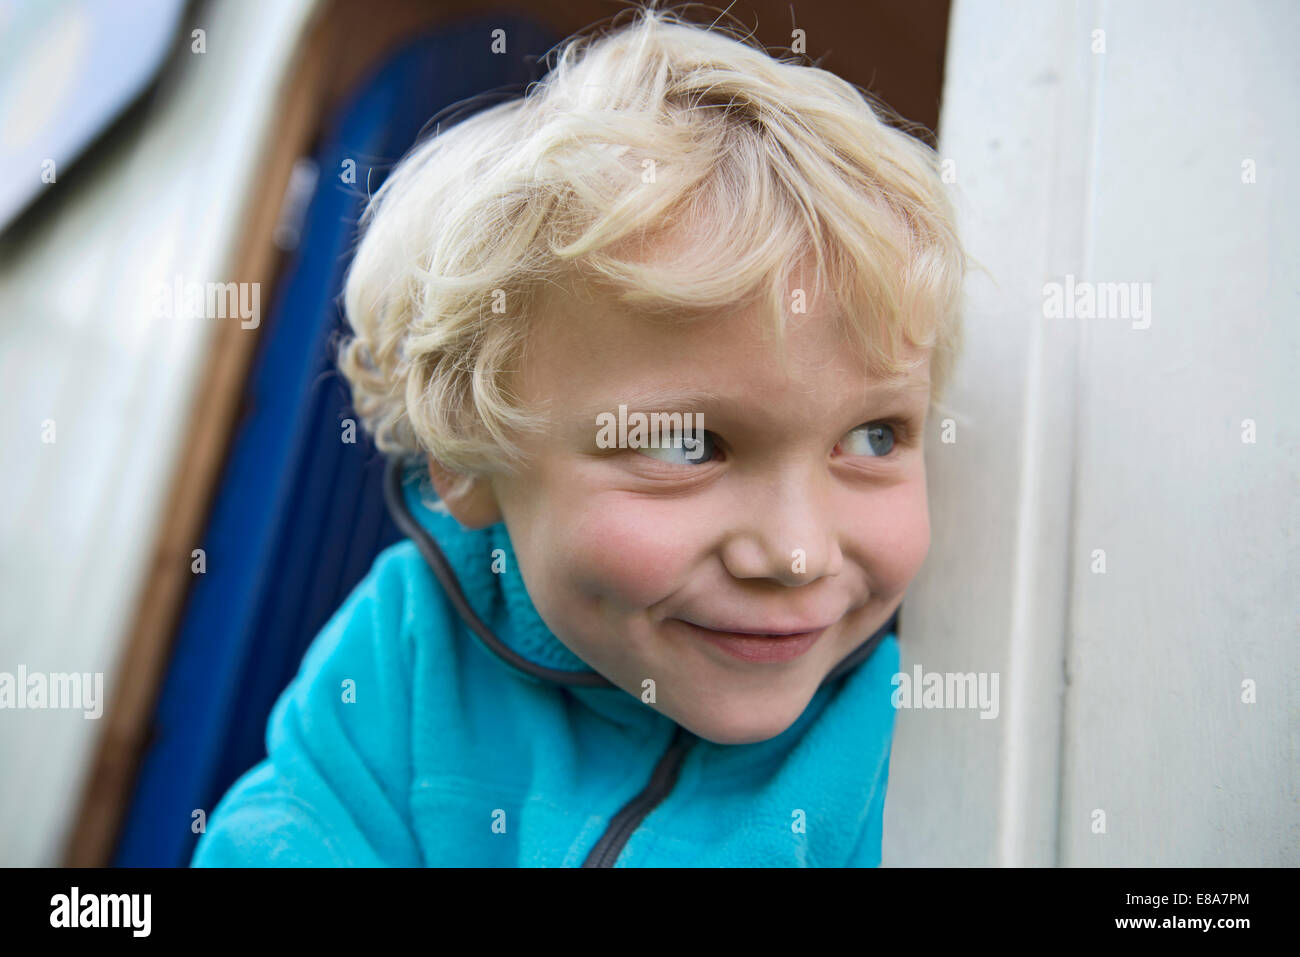 Close up portrait of young blonde Cheeky Boy Photo Stock